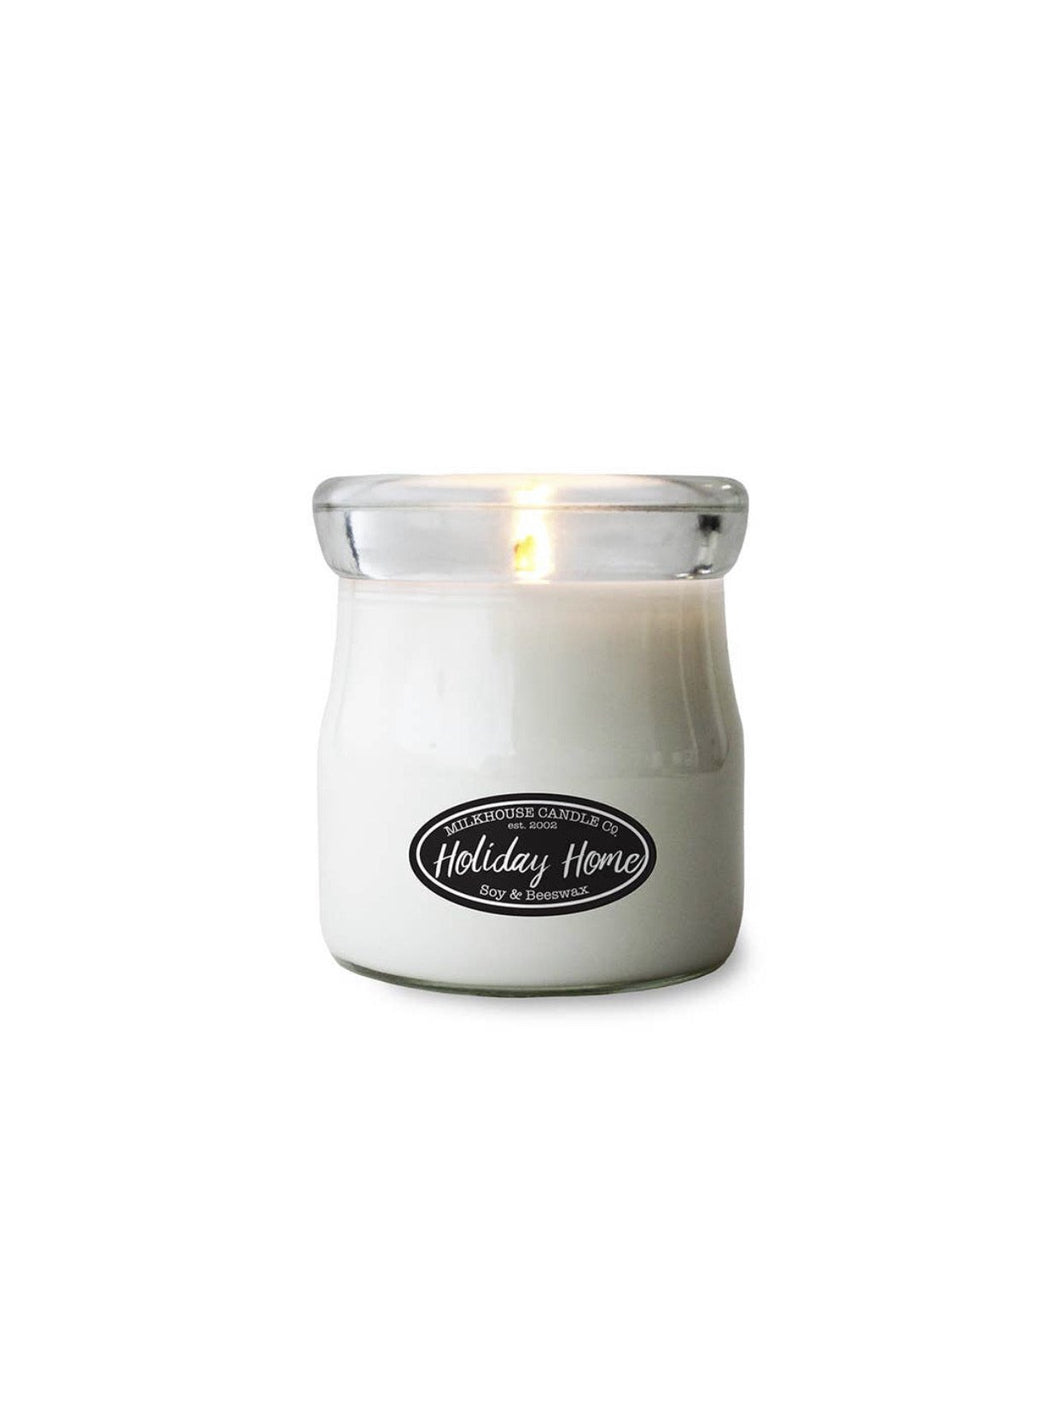 HOLIDAY HOME MINI CANDLE